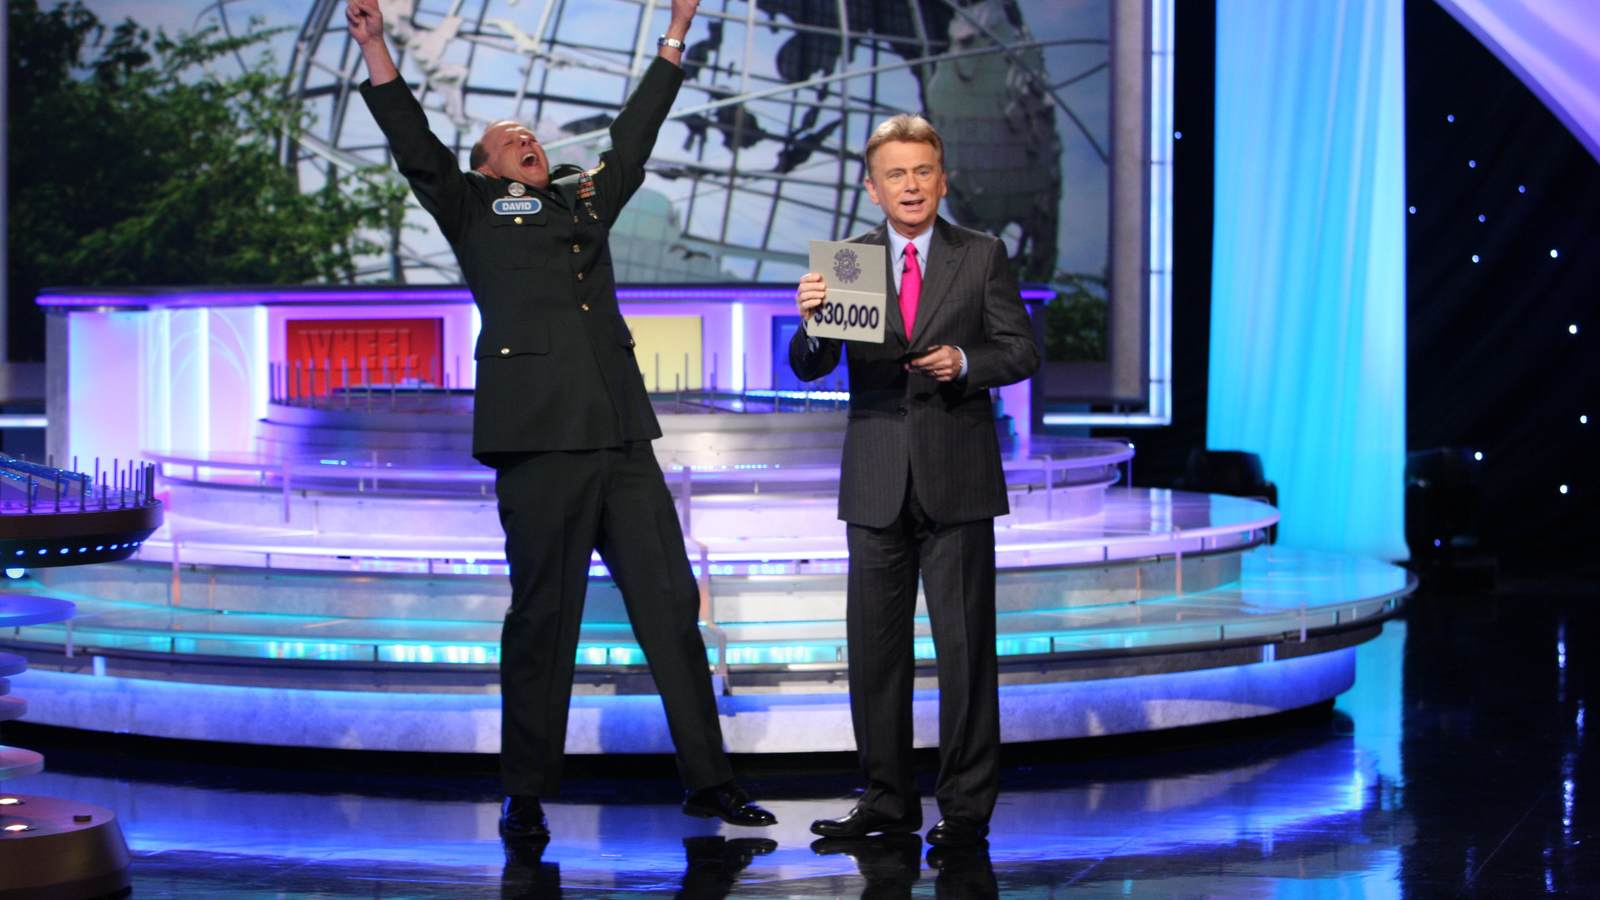 'Wheel of Fortune' Host Pat Sajak Recounts His Days as an Army DJ